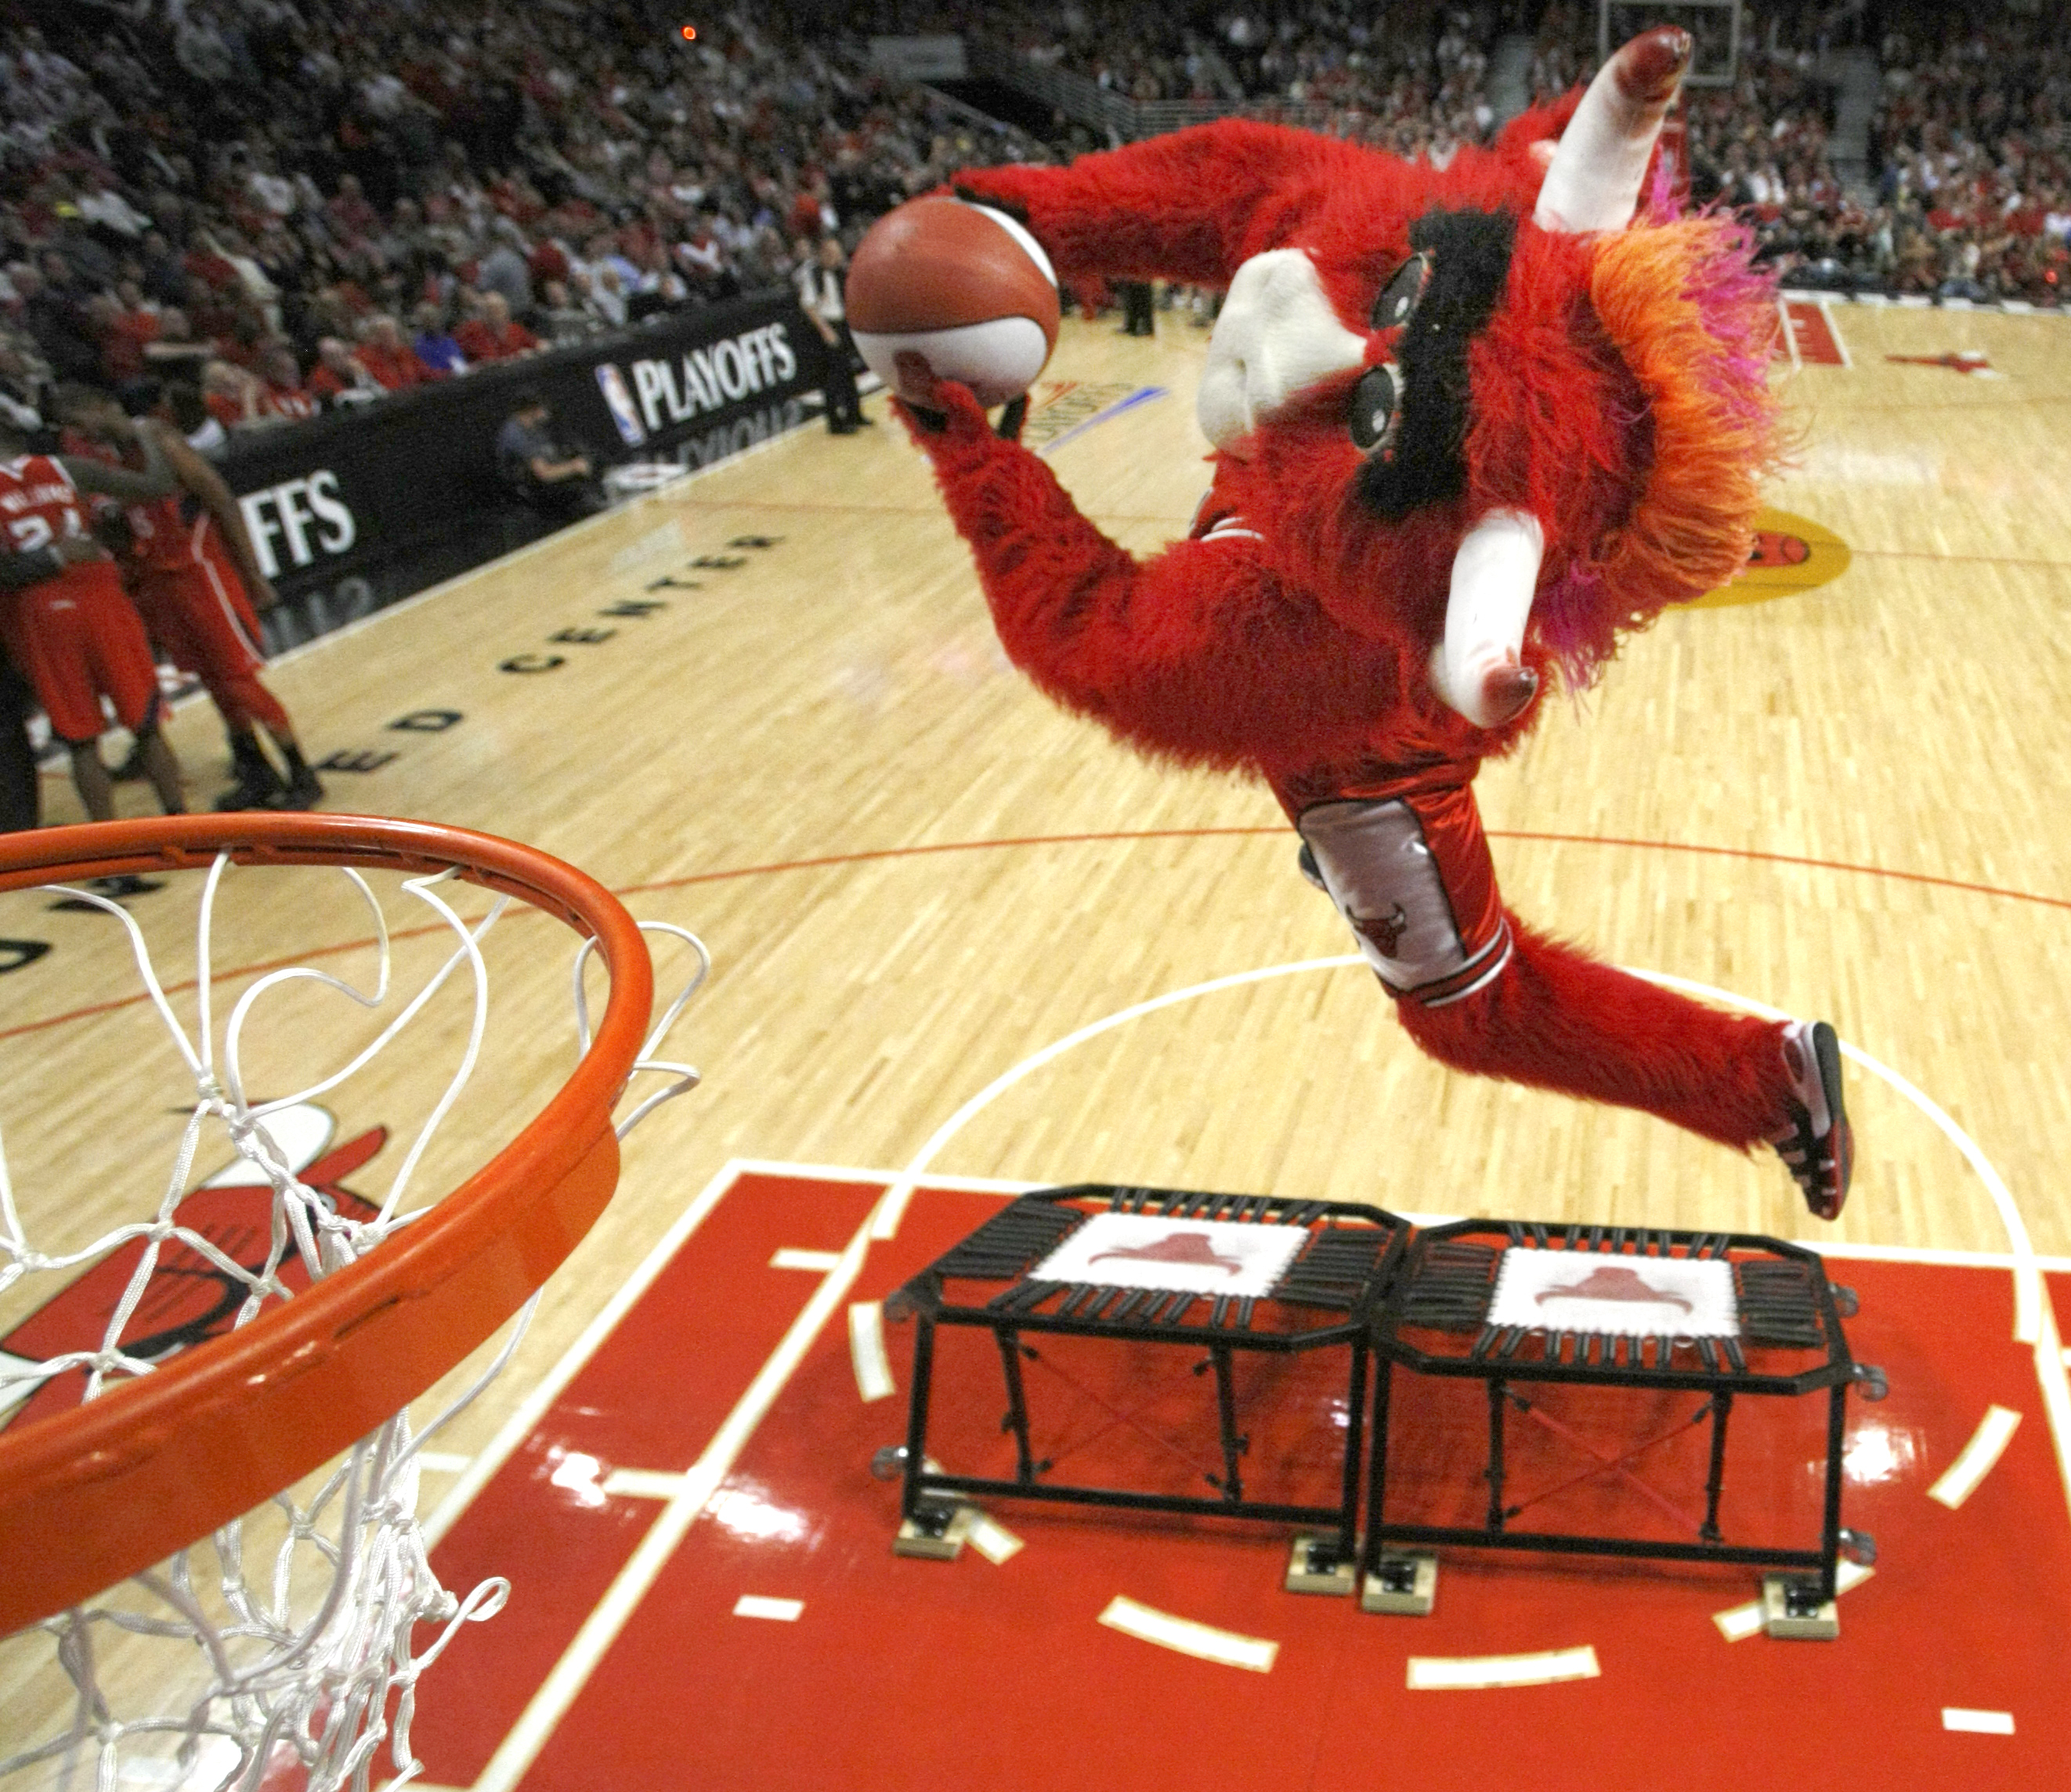 A dunk from Benny the Bull, the Chicago team's mascot. (AP/Charles Rex Abrogast)